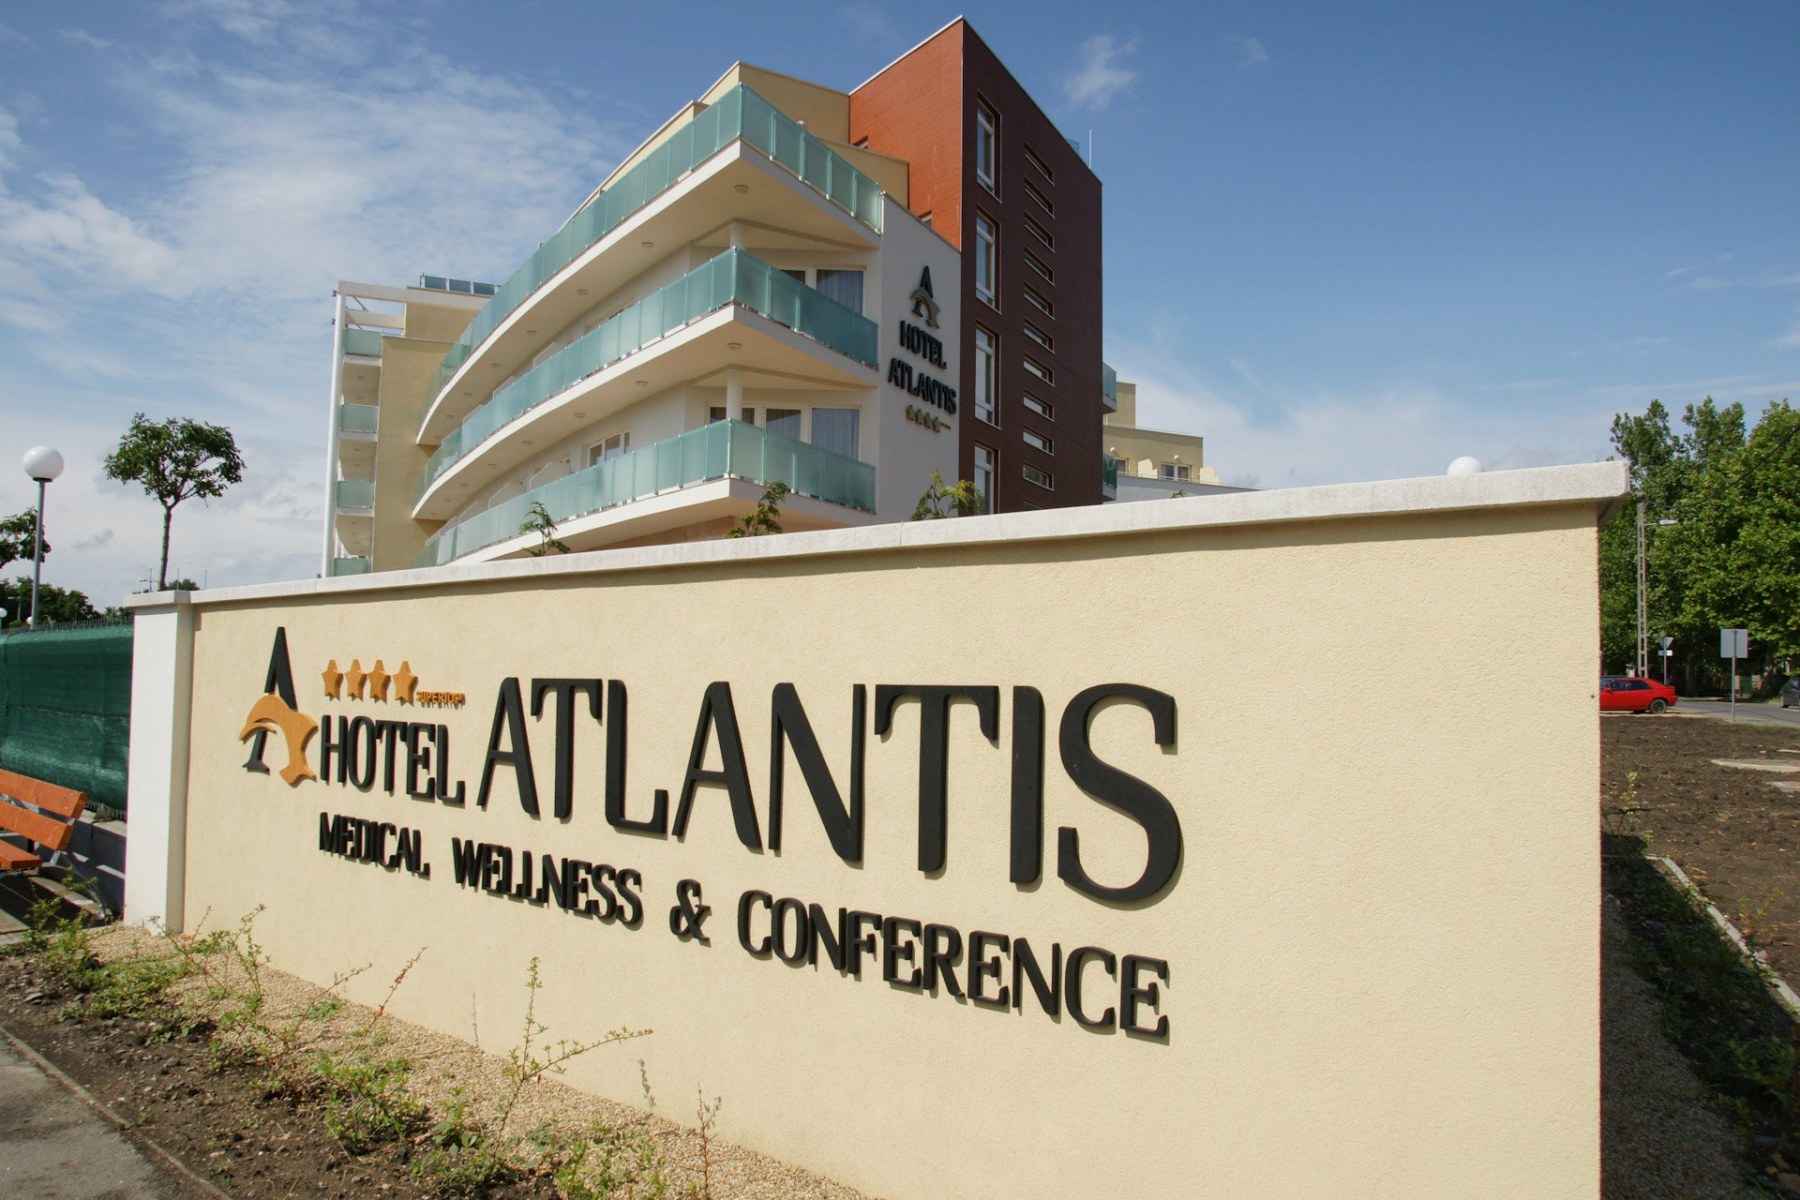 Hotel Atlantis Medical Center & Conference